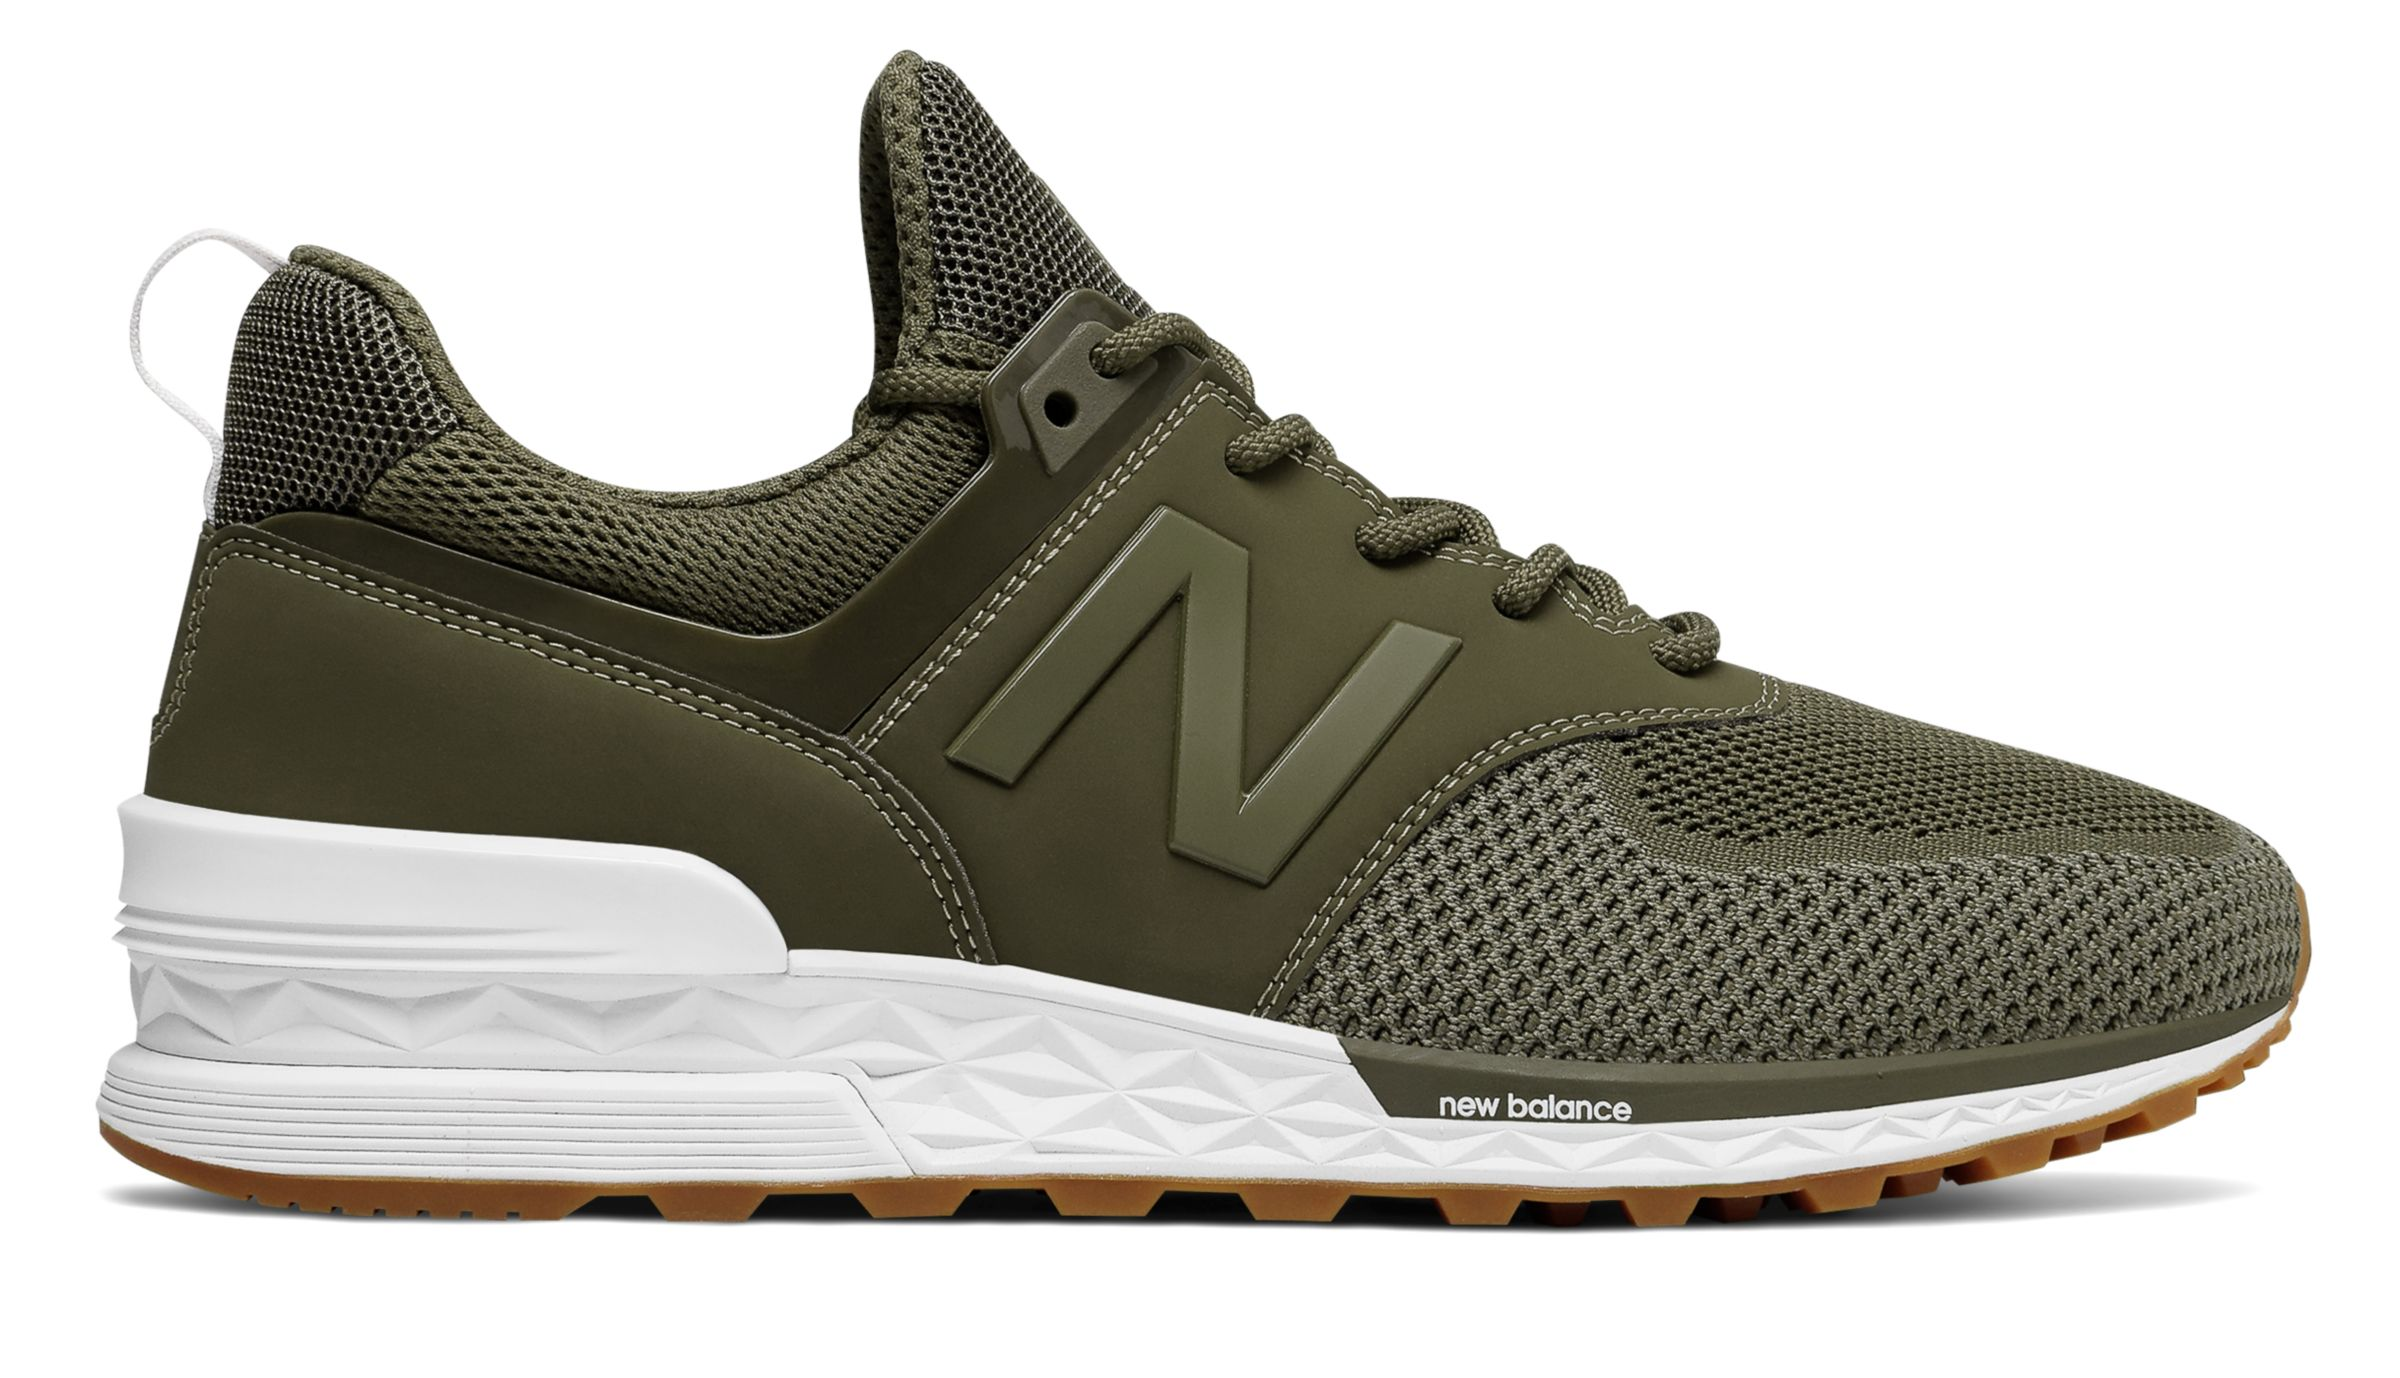 timeless design f8551 f668f Details about New Balance Male Men's 574 Sport Mens Lifestyle Shoes Green  With Green